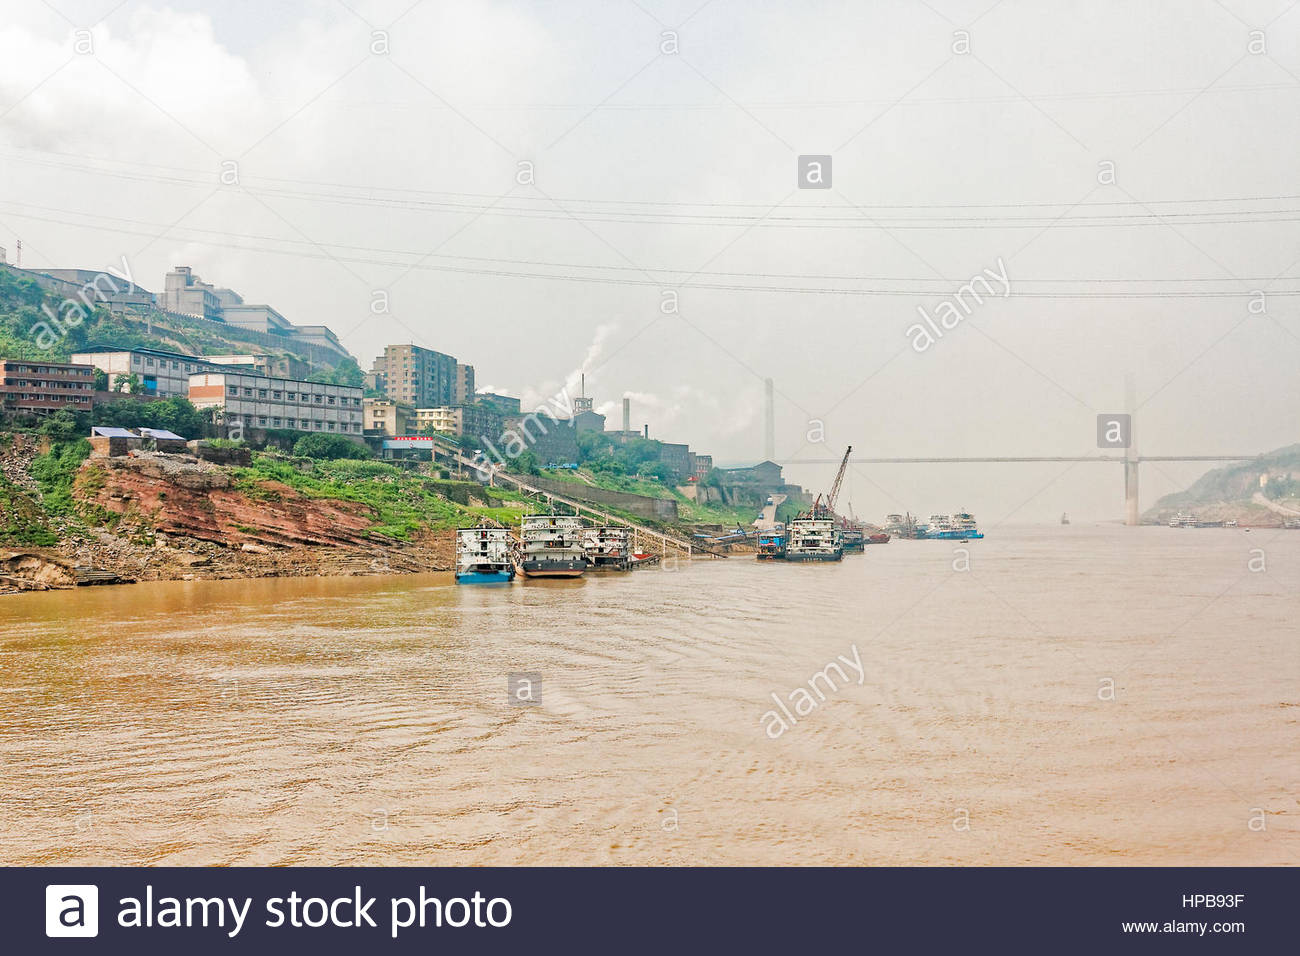 Factories on the banks of the Yangtze River, near the town of Fuling, on a hazy morning - Stock Image